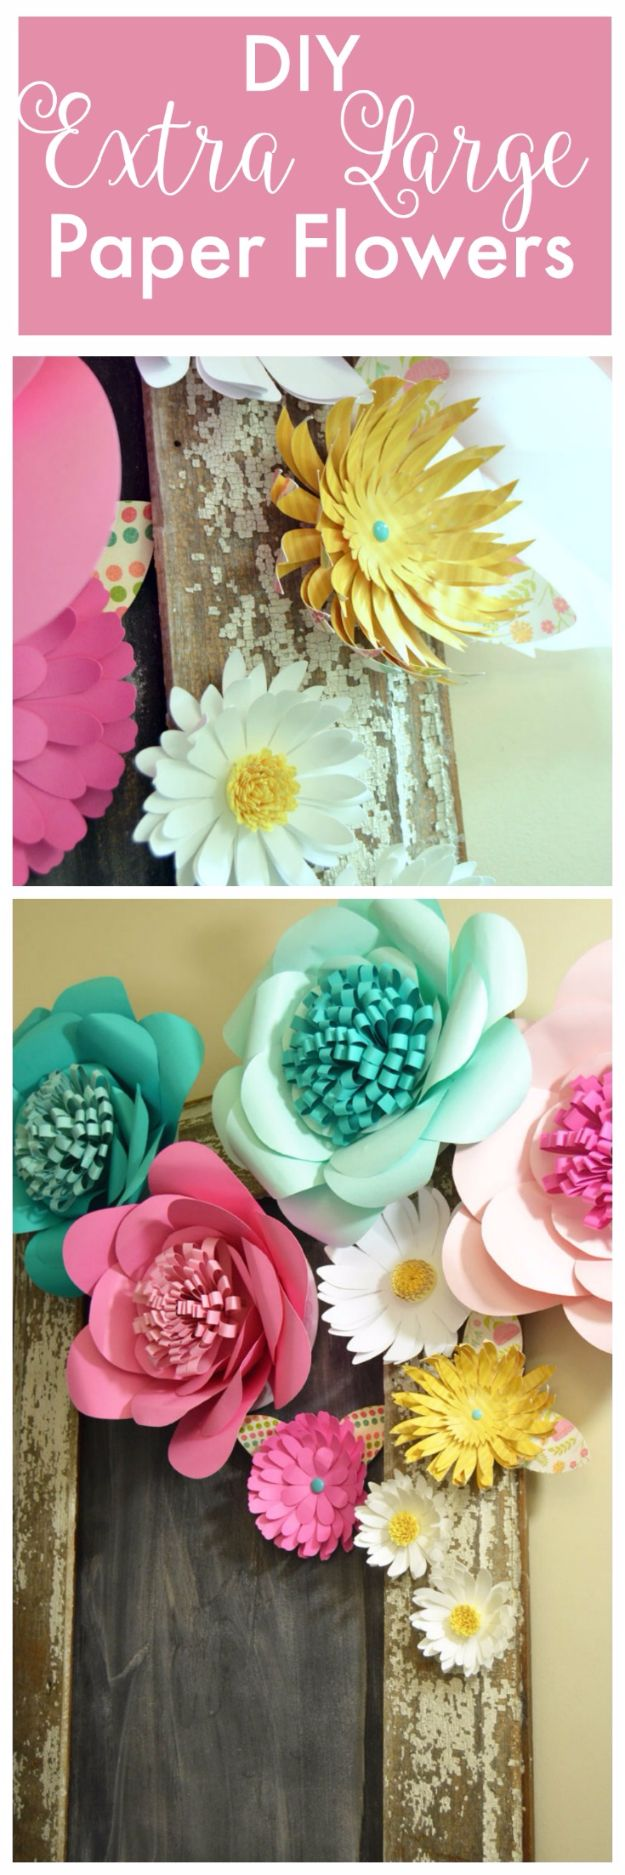 DIY Paper Flowers - DIY Extra Large Paper Flowers - How To Make A Paper Flower - Large Wedding Backdrop for Wall Decor - Easy Tissue Paper Flower Tutorial for Kids - Giant Projects for Photo Backdrops - Daisy, Roses, Bouquets, Centerpieces - Cricut Template and Step by Step Tutorial